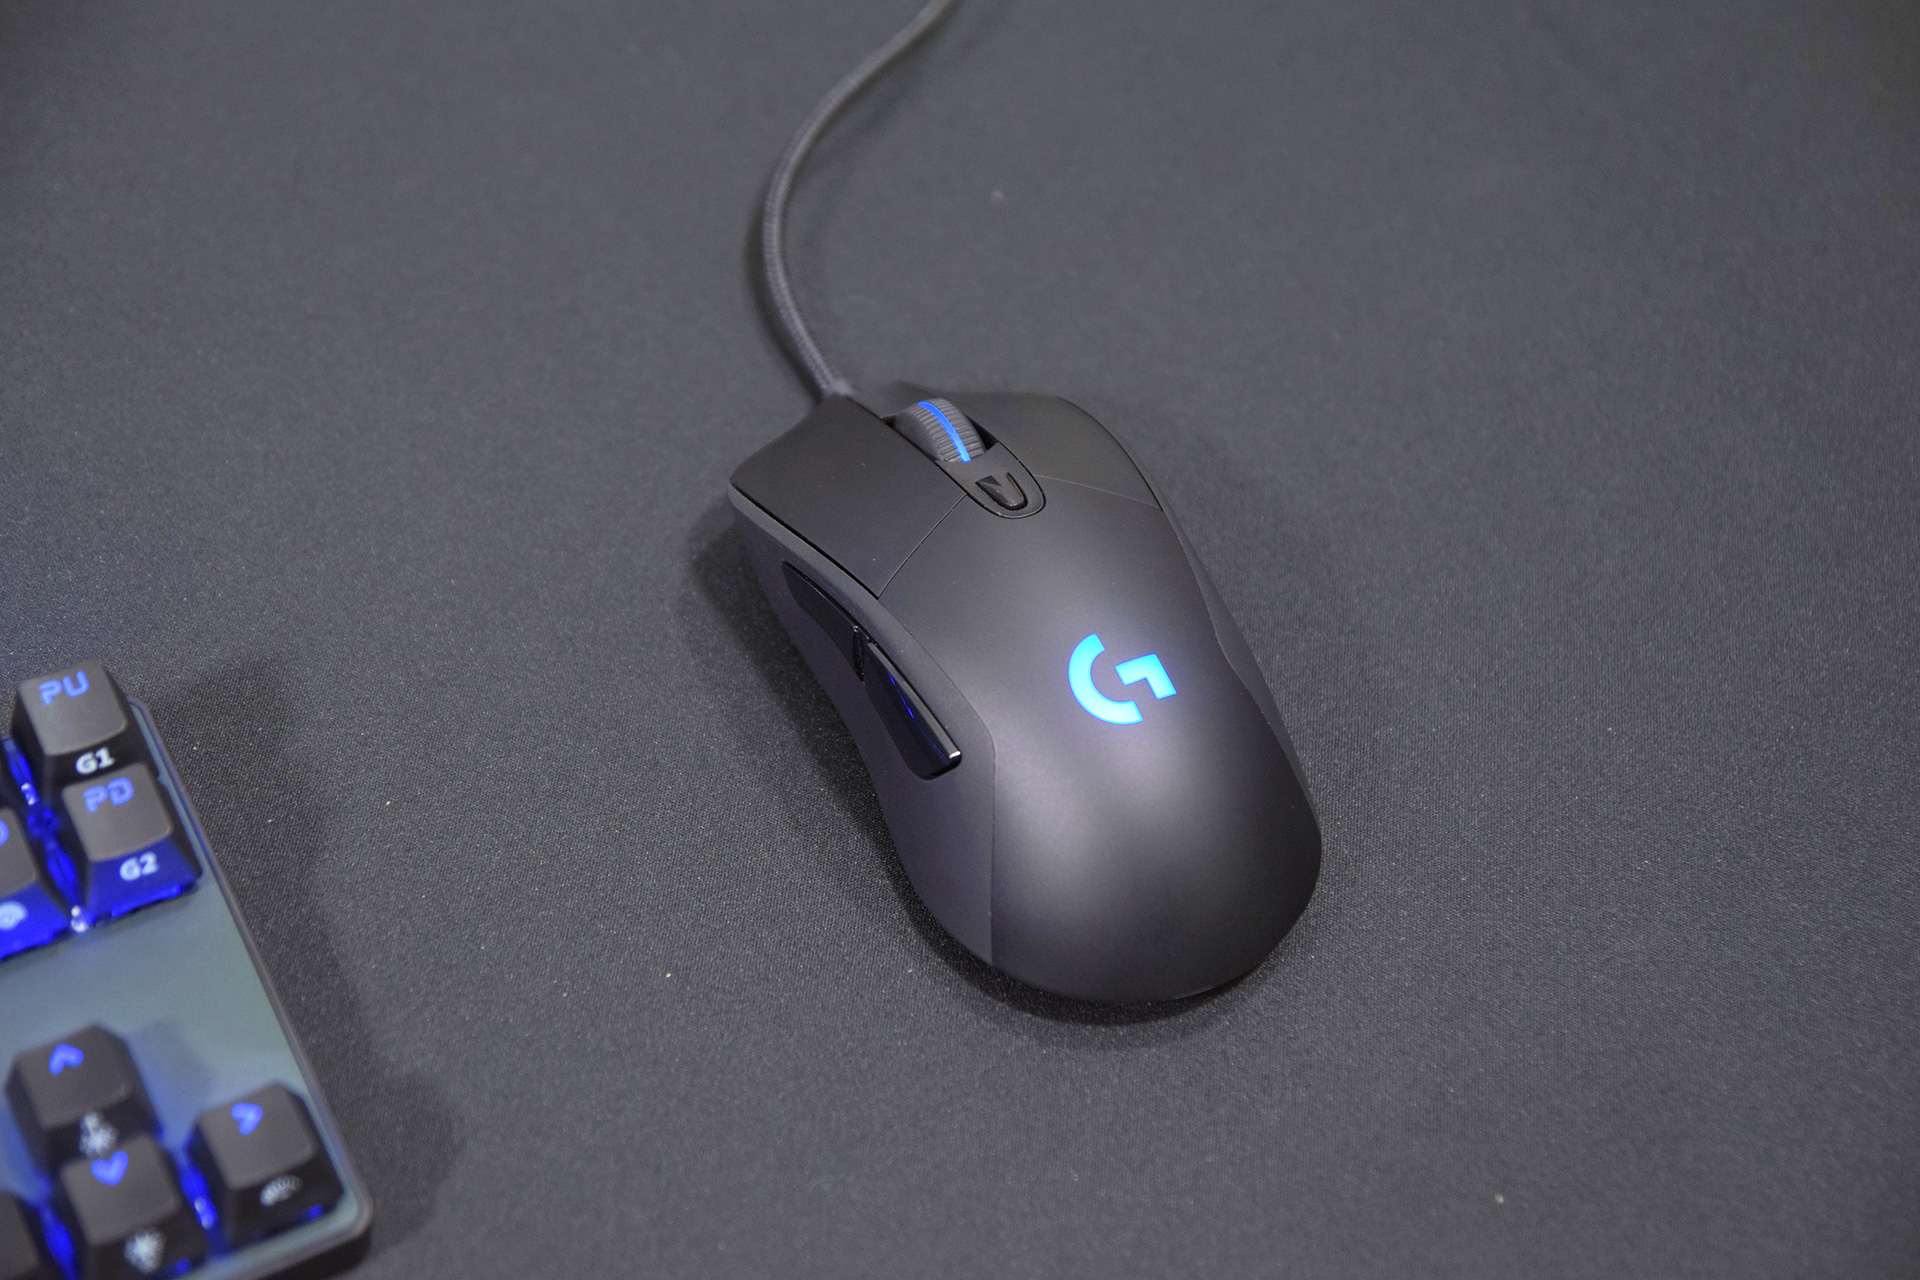 Logitech G403 Review | Best Palm Grip Gaming Mouse? - Jerry Neutron